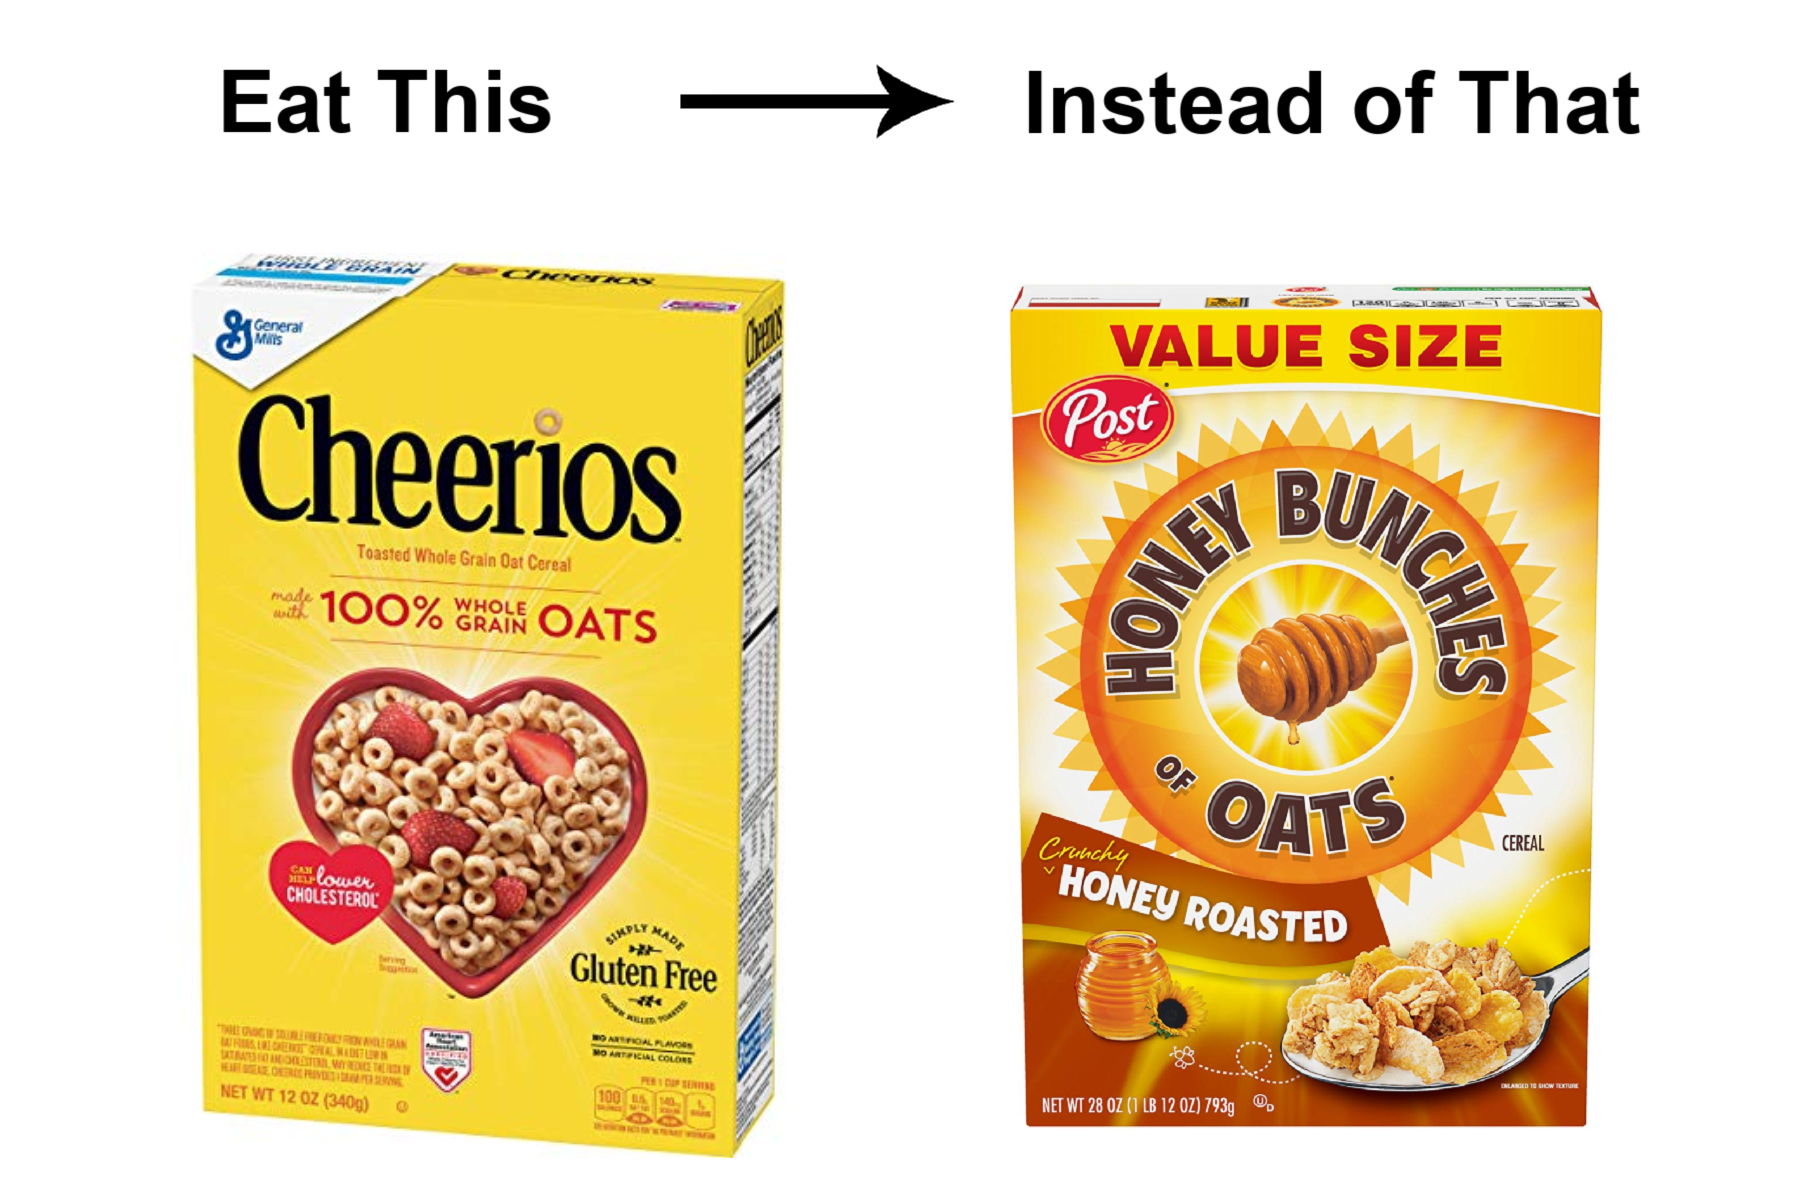 Cheerios instead of Honey Bunches of Oats